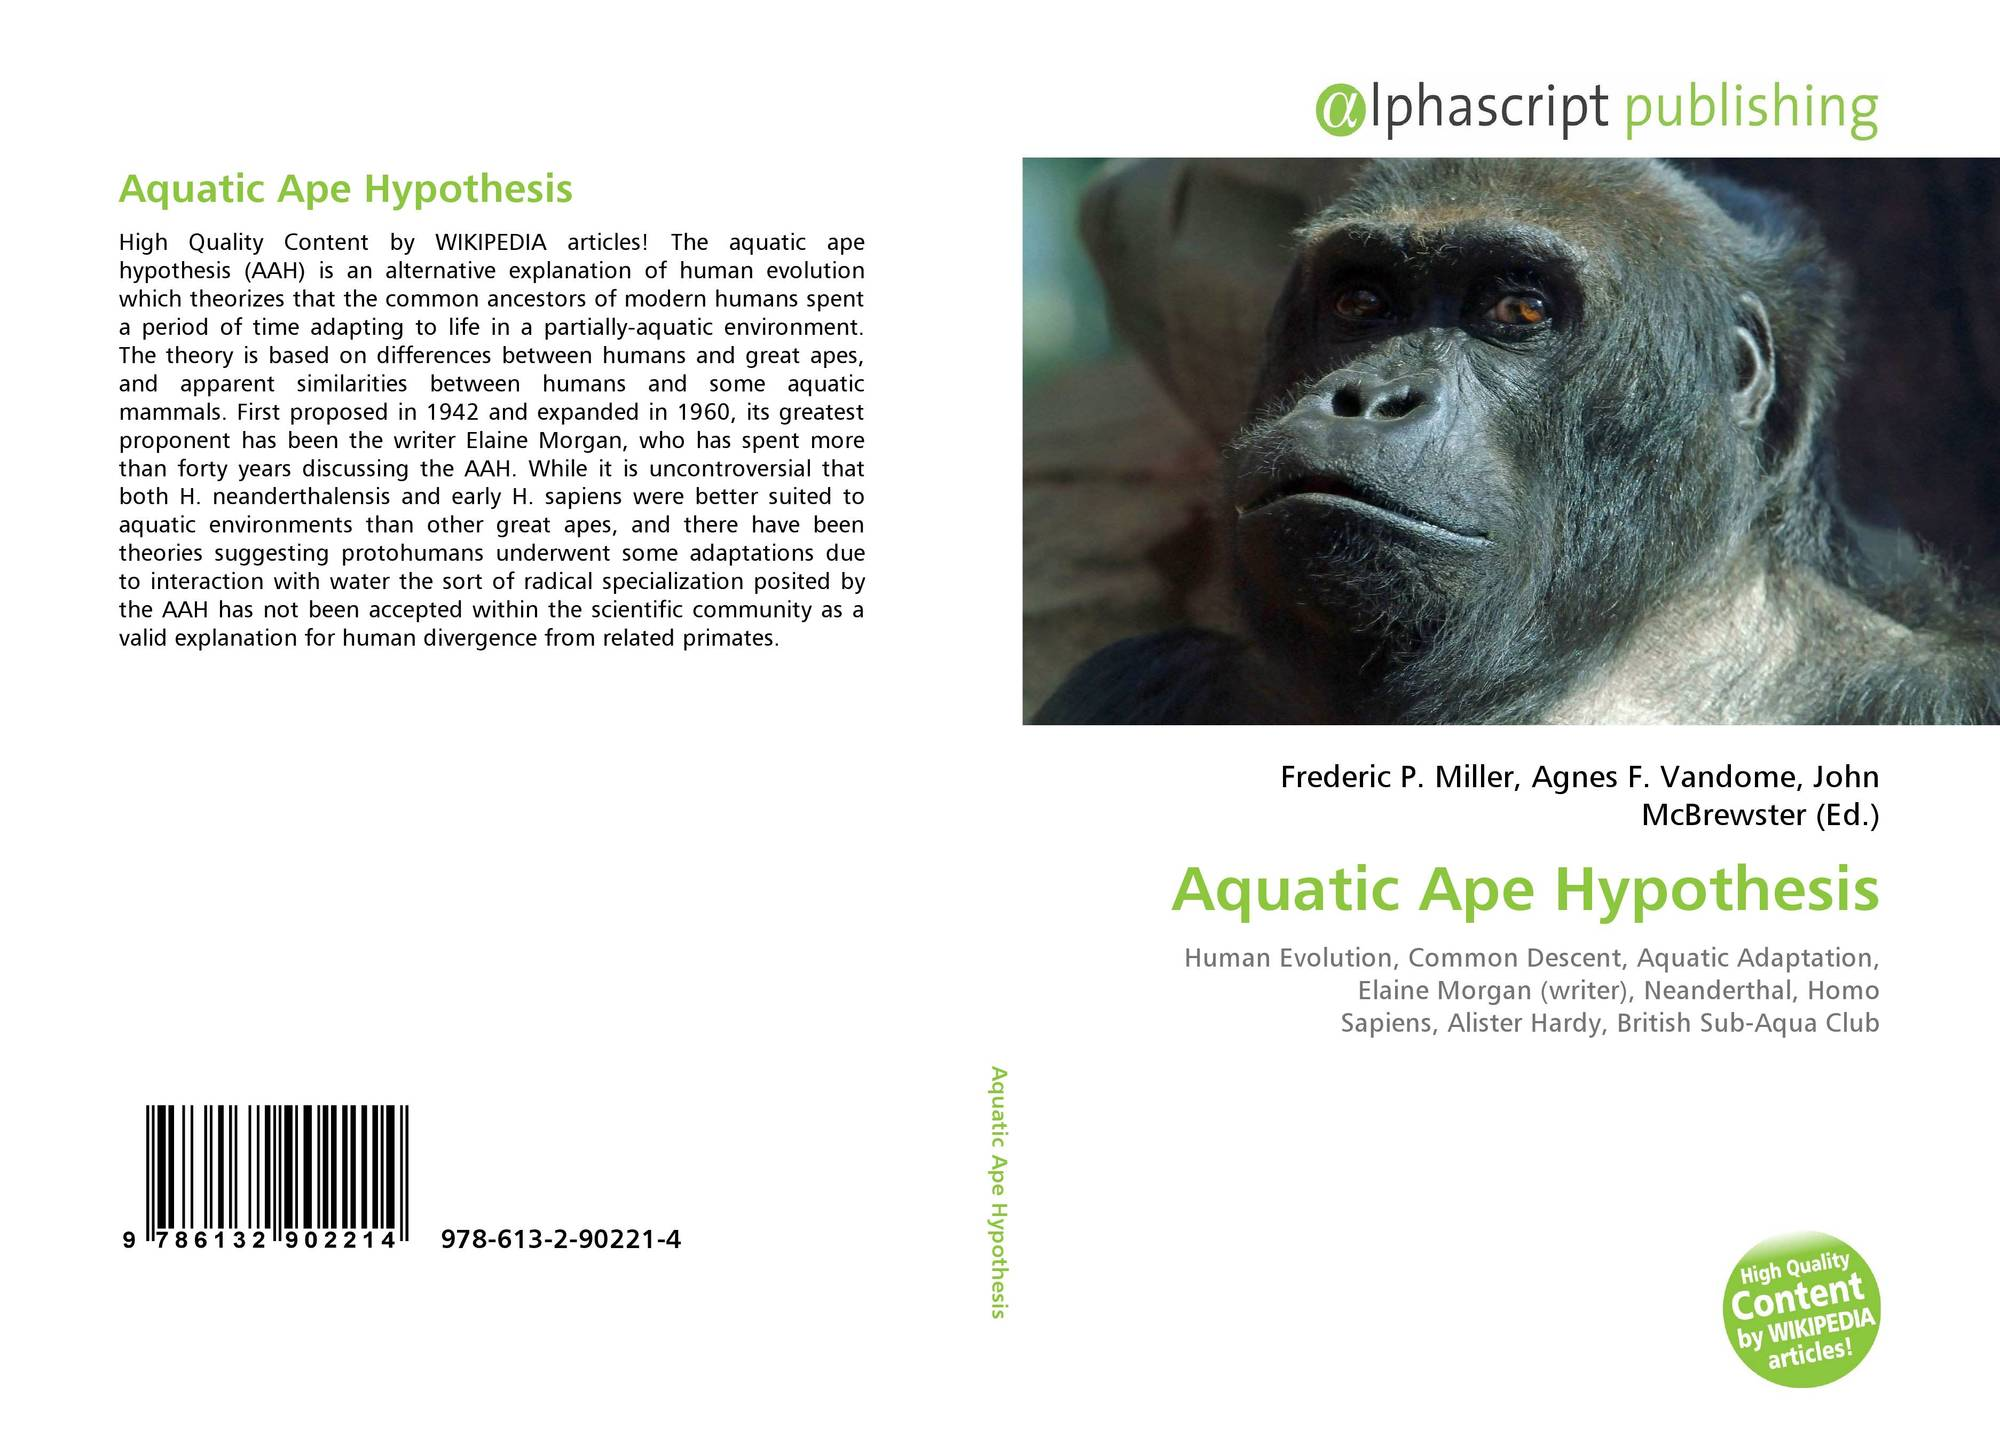 the aquatic ape hypothesis aah essay I read the essayand it does makes will have difficulties in accepting the aquatic ape hypothesis aah aat alister hardy aquatic ape theory badjao badjao.